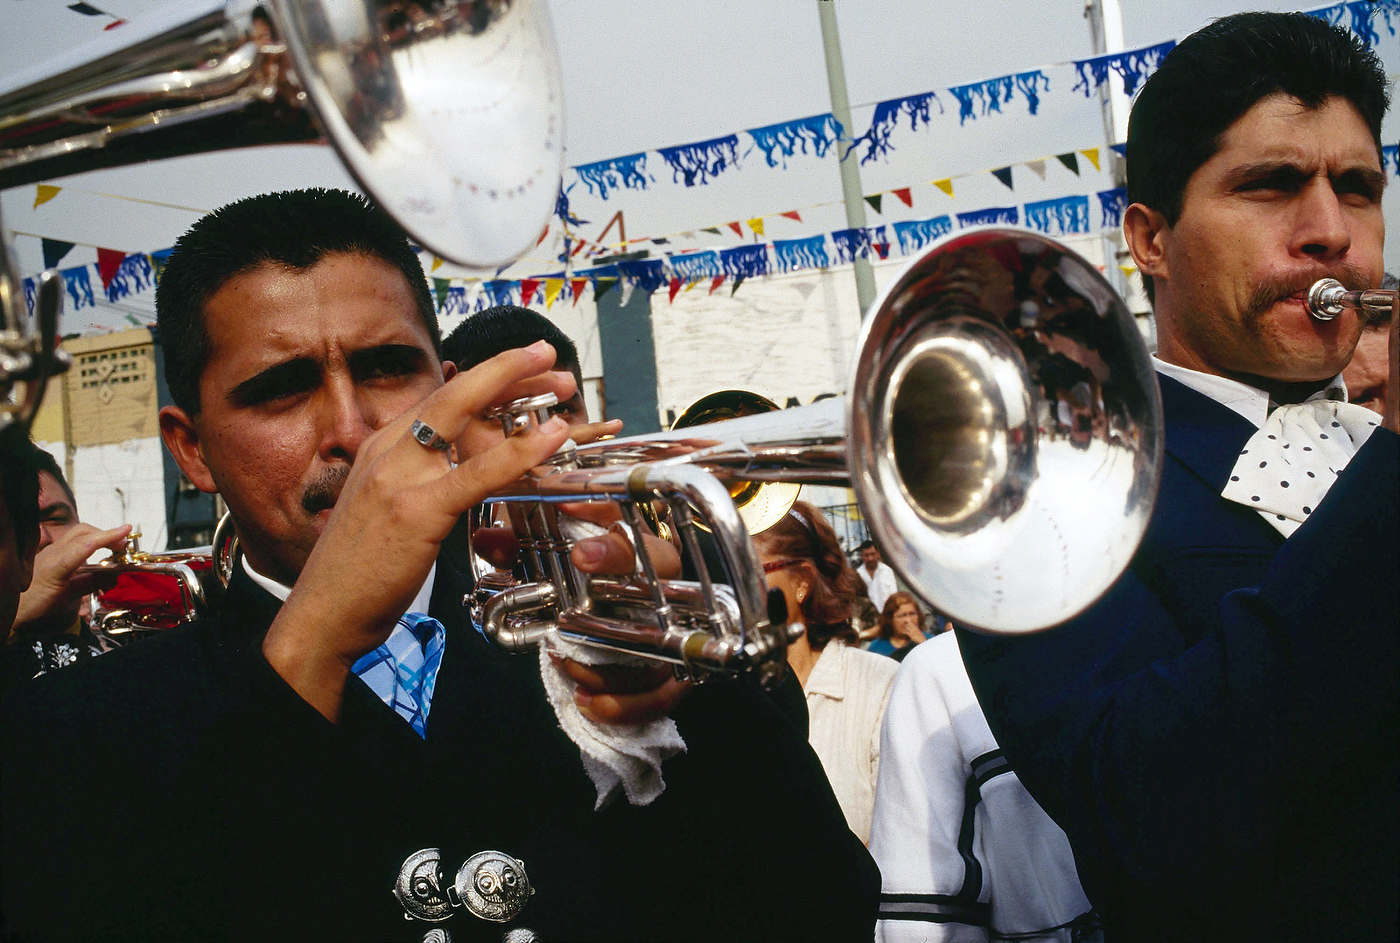 Mariachis_New14_006